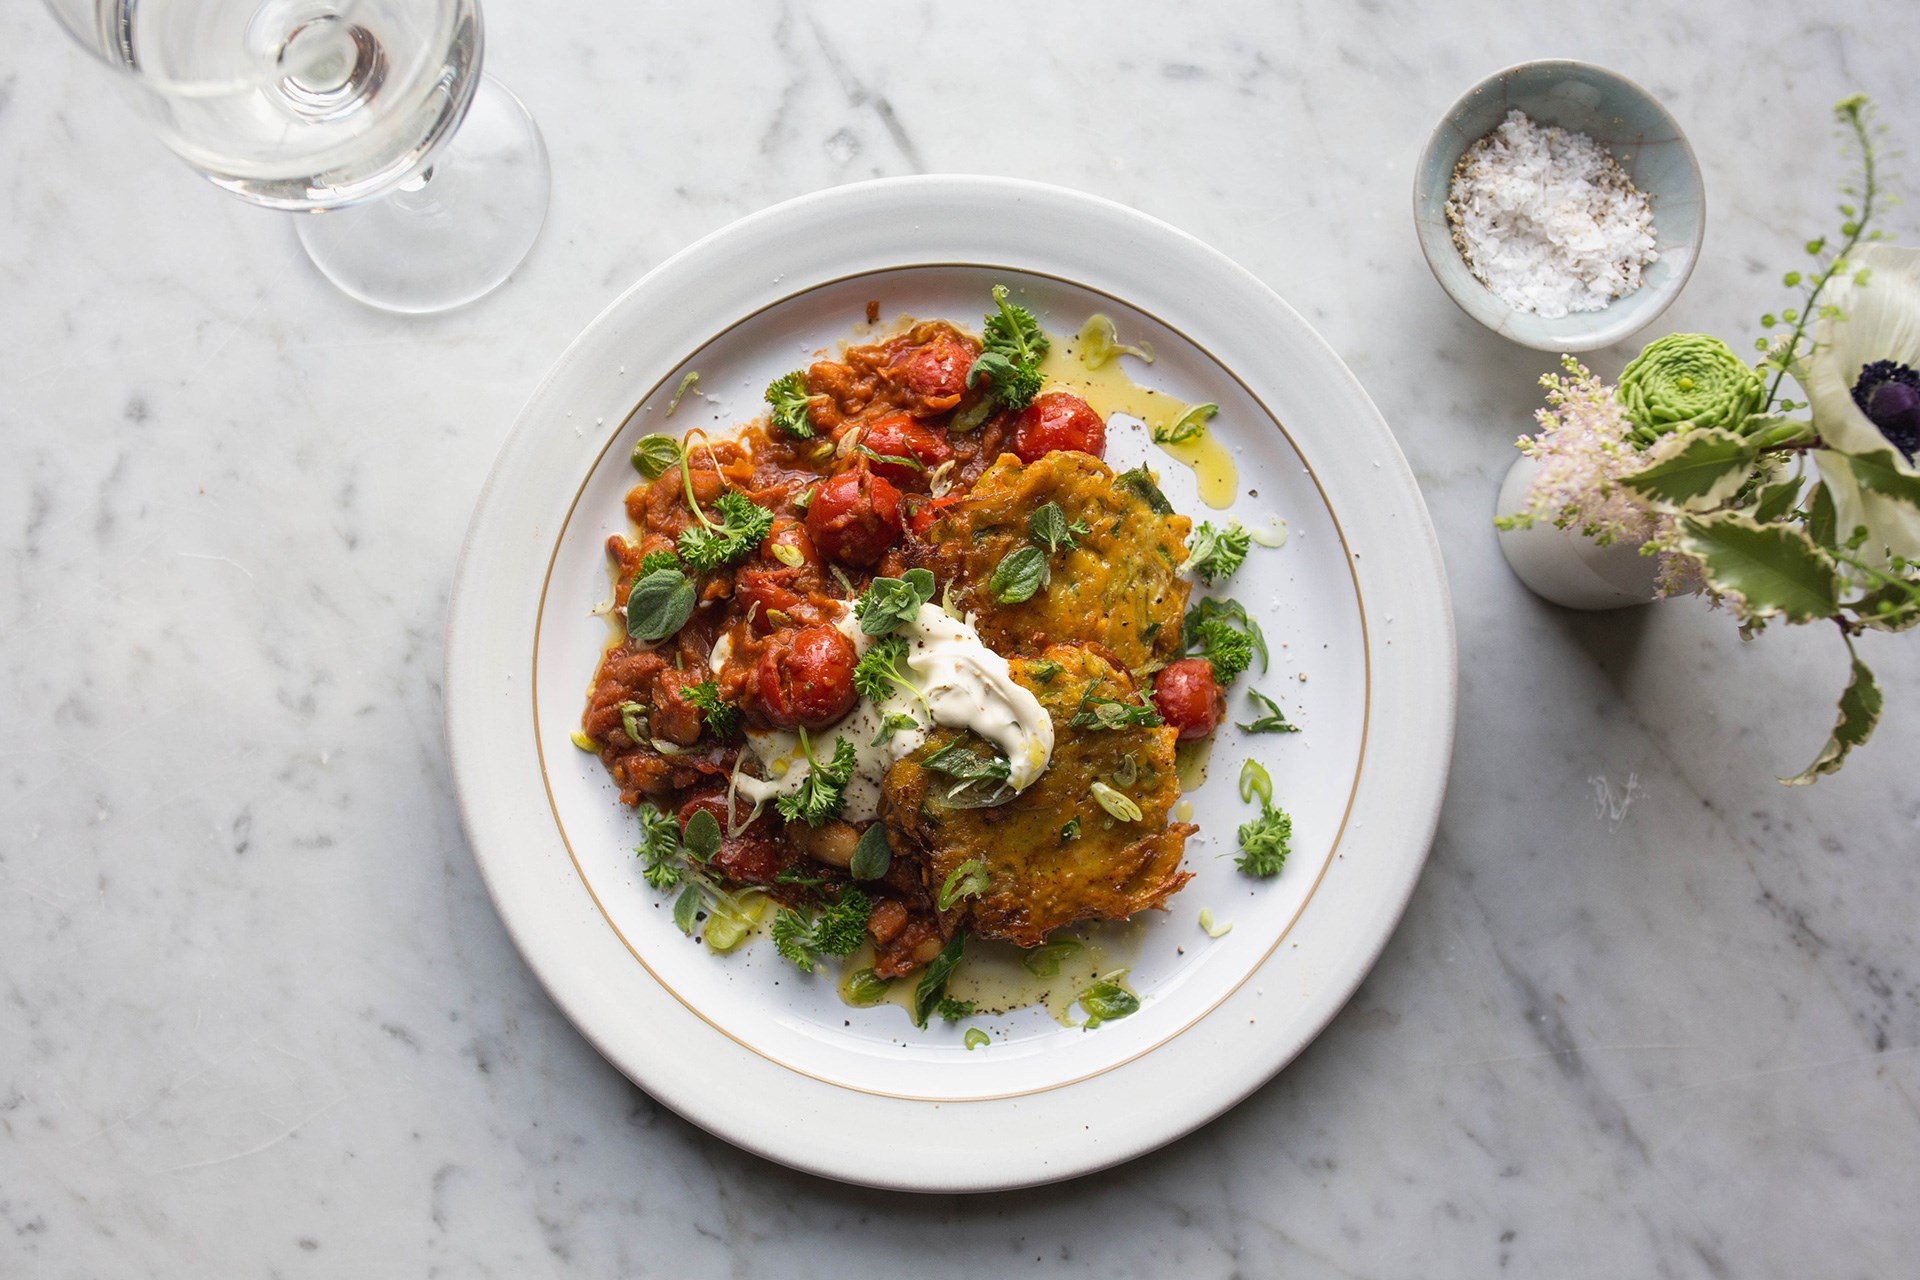 Whether for brunch, lunch or dinner, Anna Barnett's latest recipe is sure to be a hit: https://t.co/JB9rXxoqtq https://t.co/AkTGiHhTMS